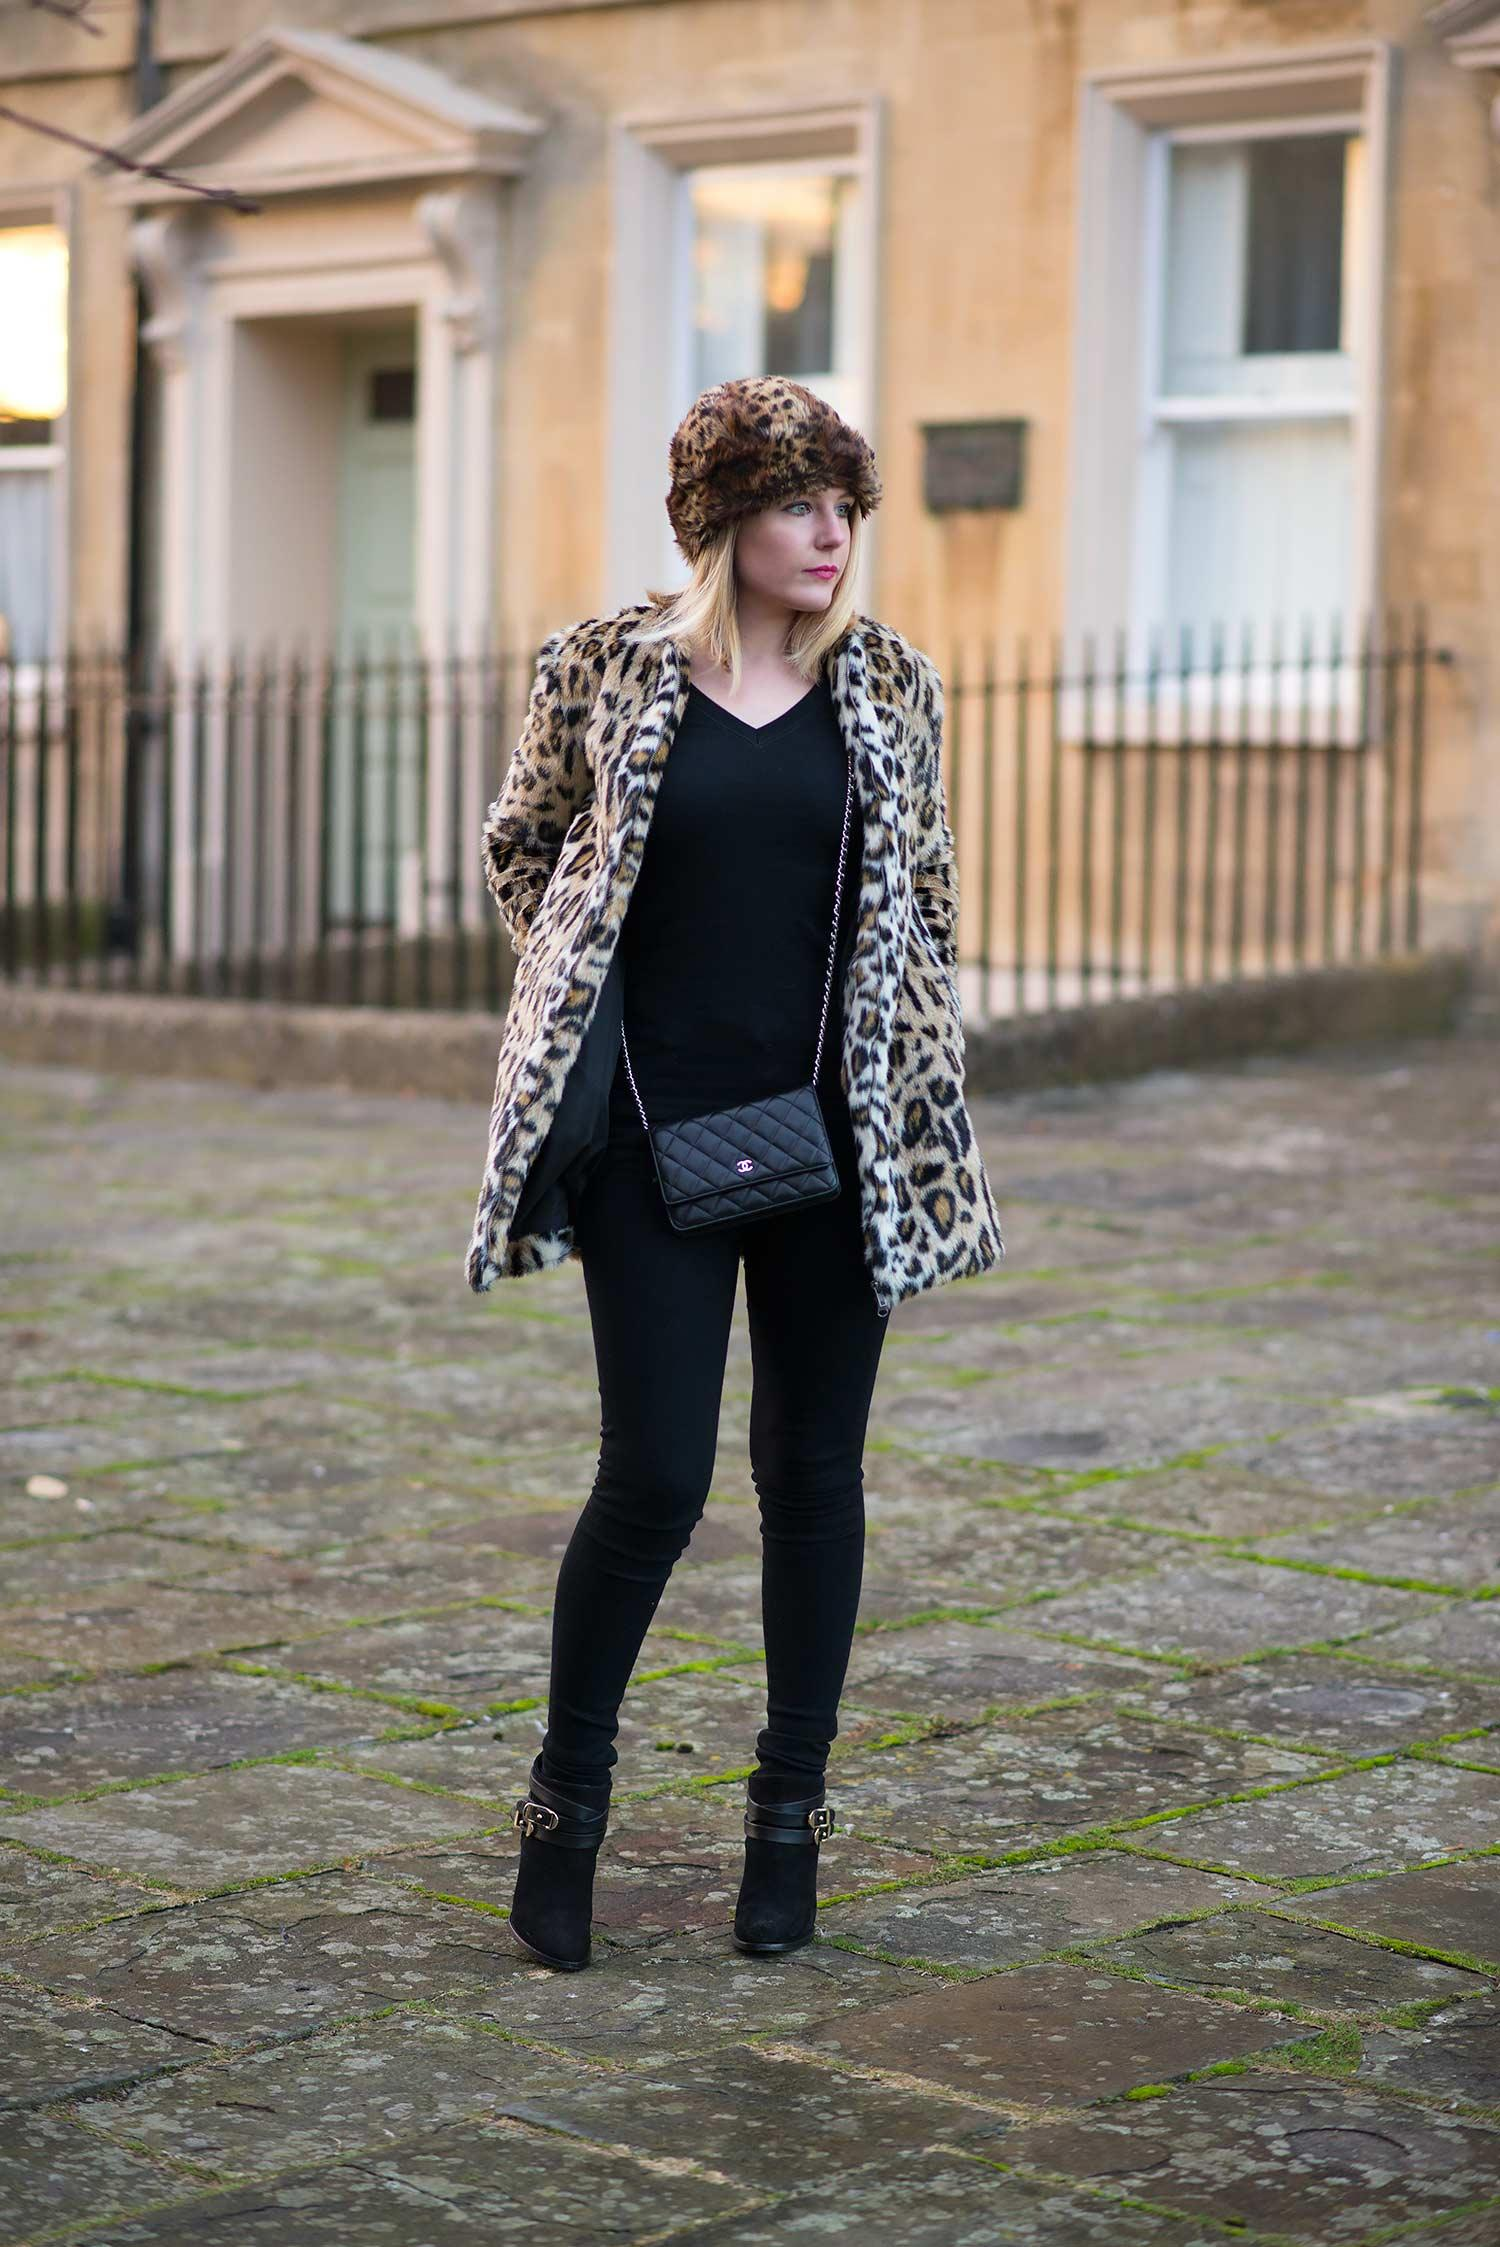 lorna-burford-uk-fashion-blogger-street-style-leopard